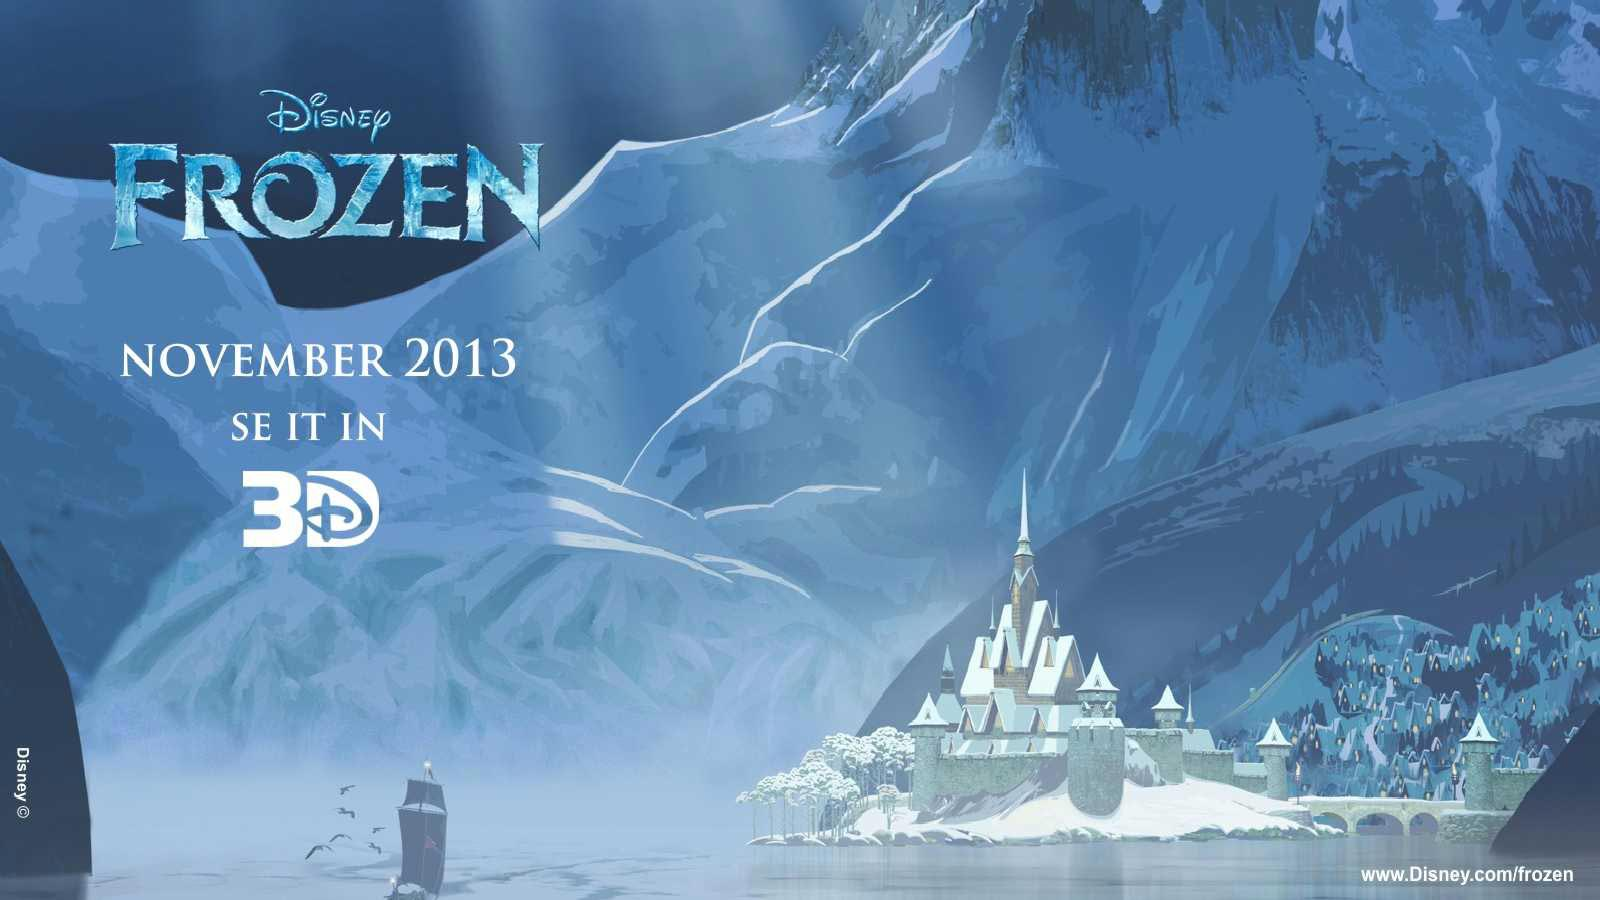 41 disney frozen hd wallpaper on wallpapersafari - Beautiful frozen computer wallpaper ...